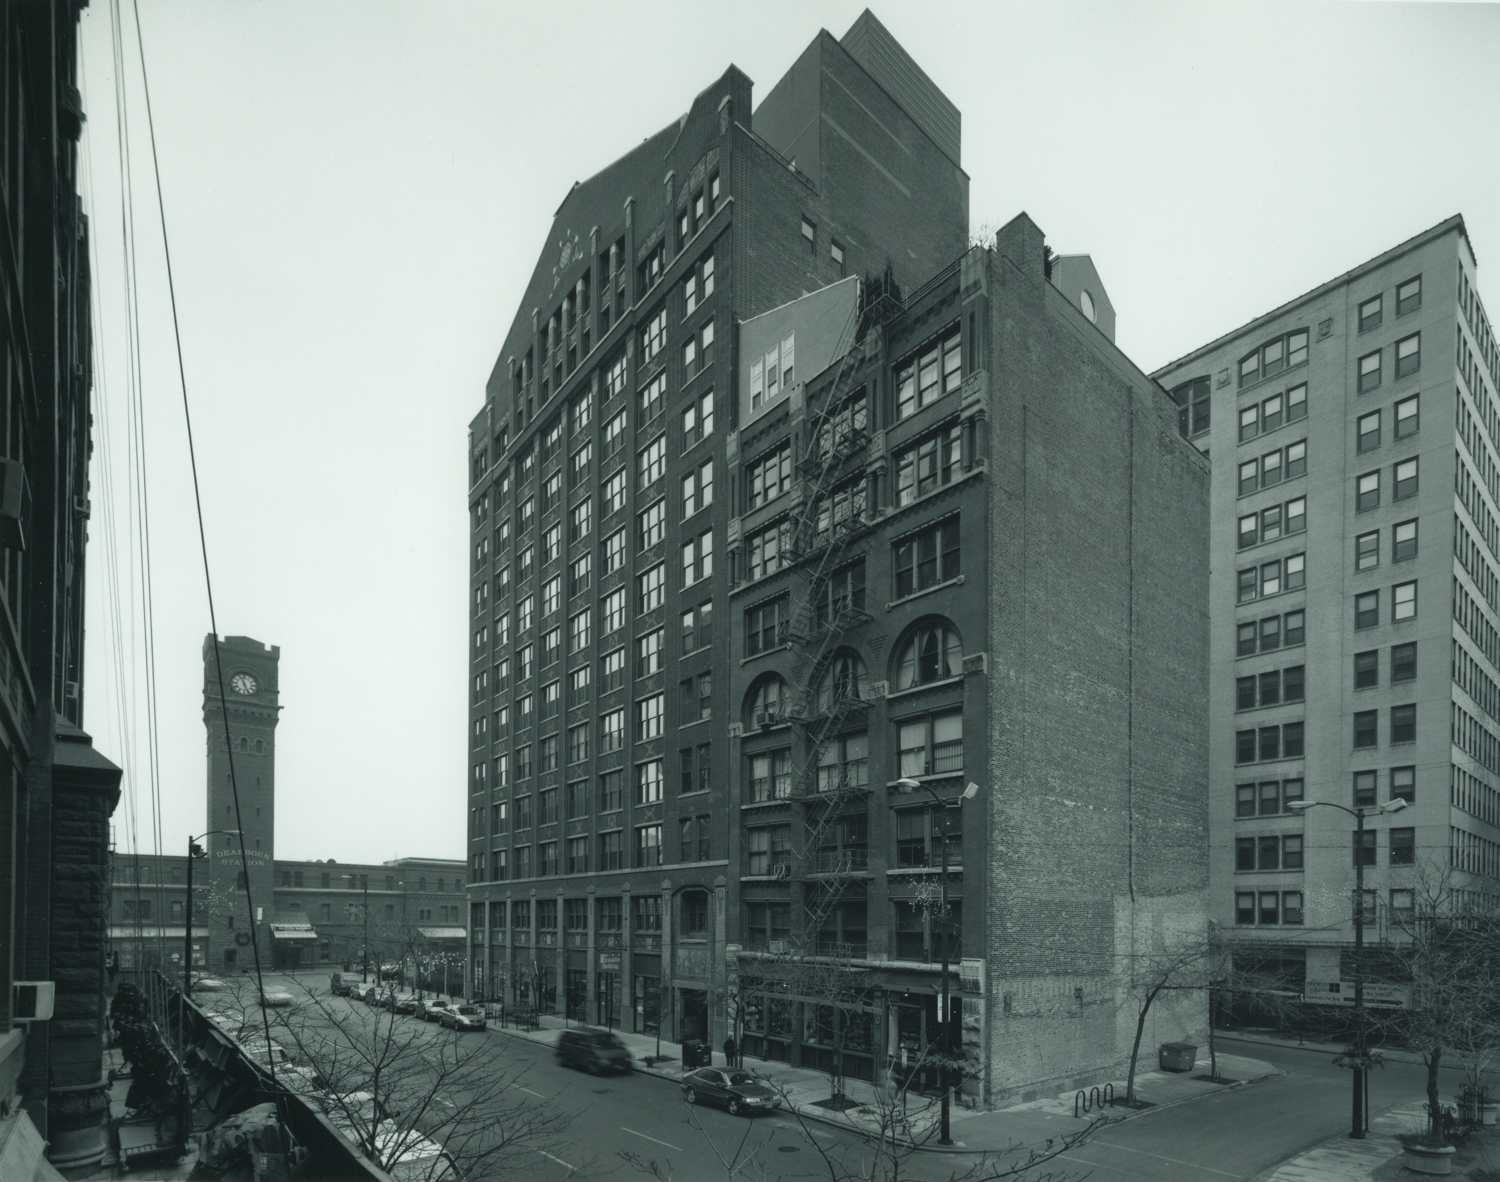 Rowe Building Looking South With Dearborn Station ©2002